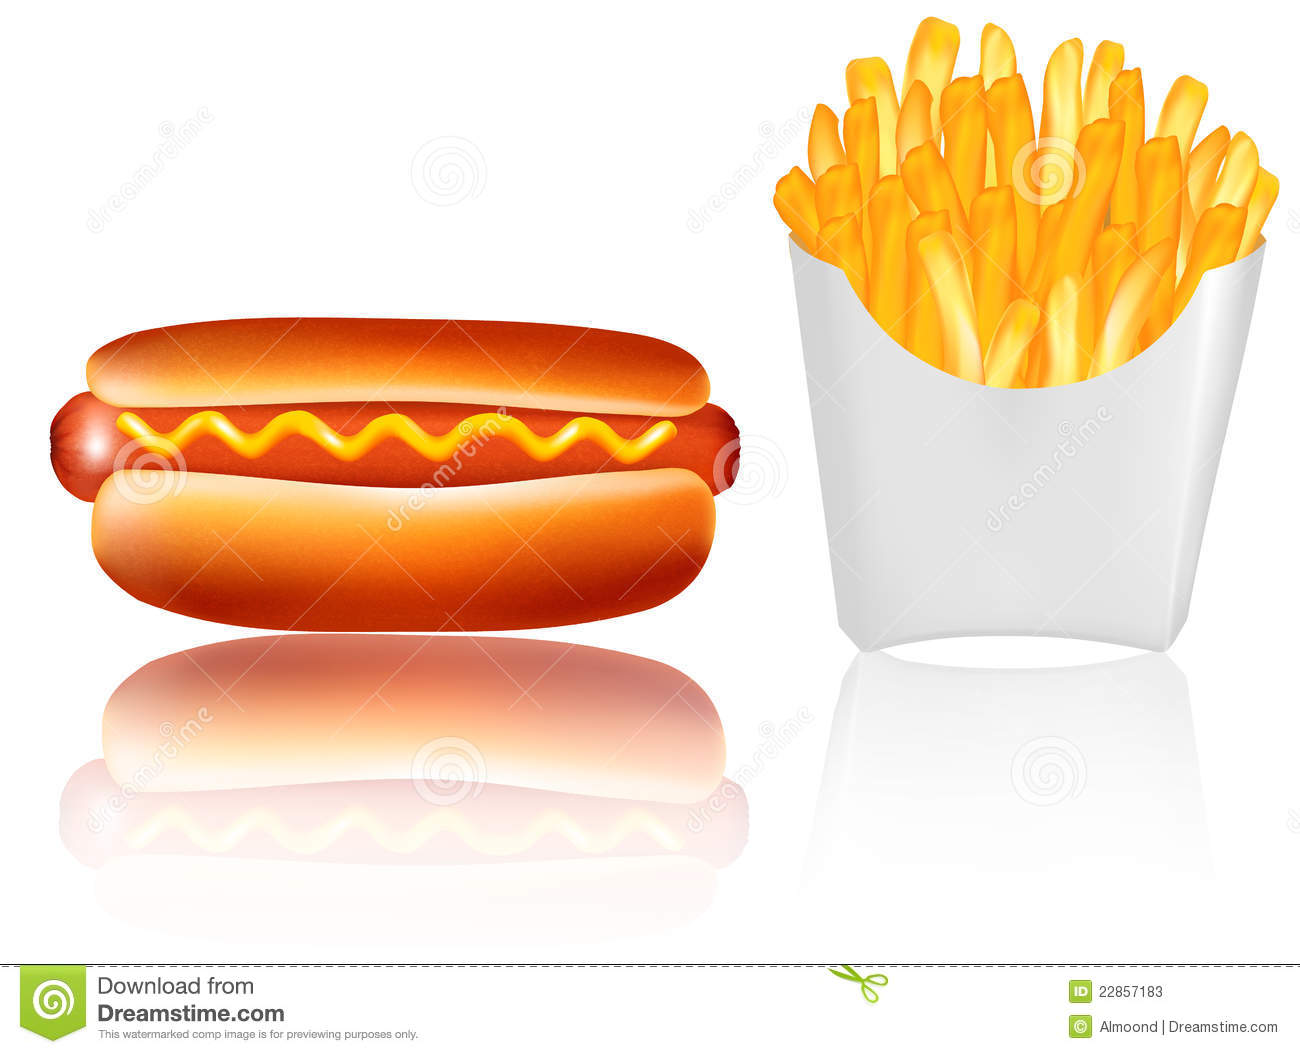 pommes frites avec un hot dog vecteur illustration de vecteur image 22857183. Black Bedroom Furniture Sets. Home Design Ideas